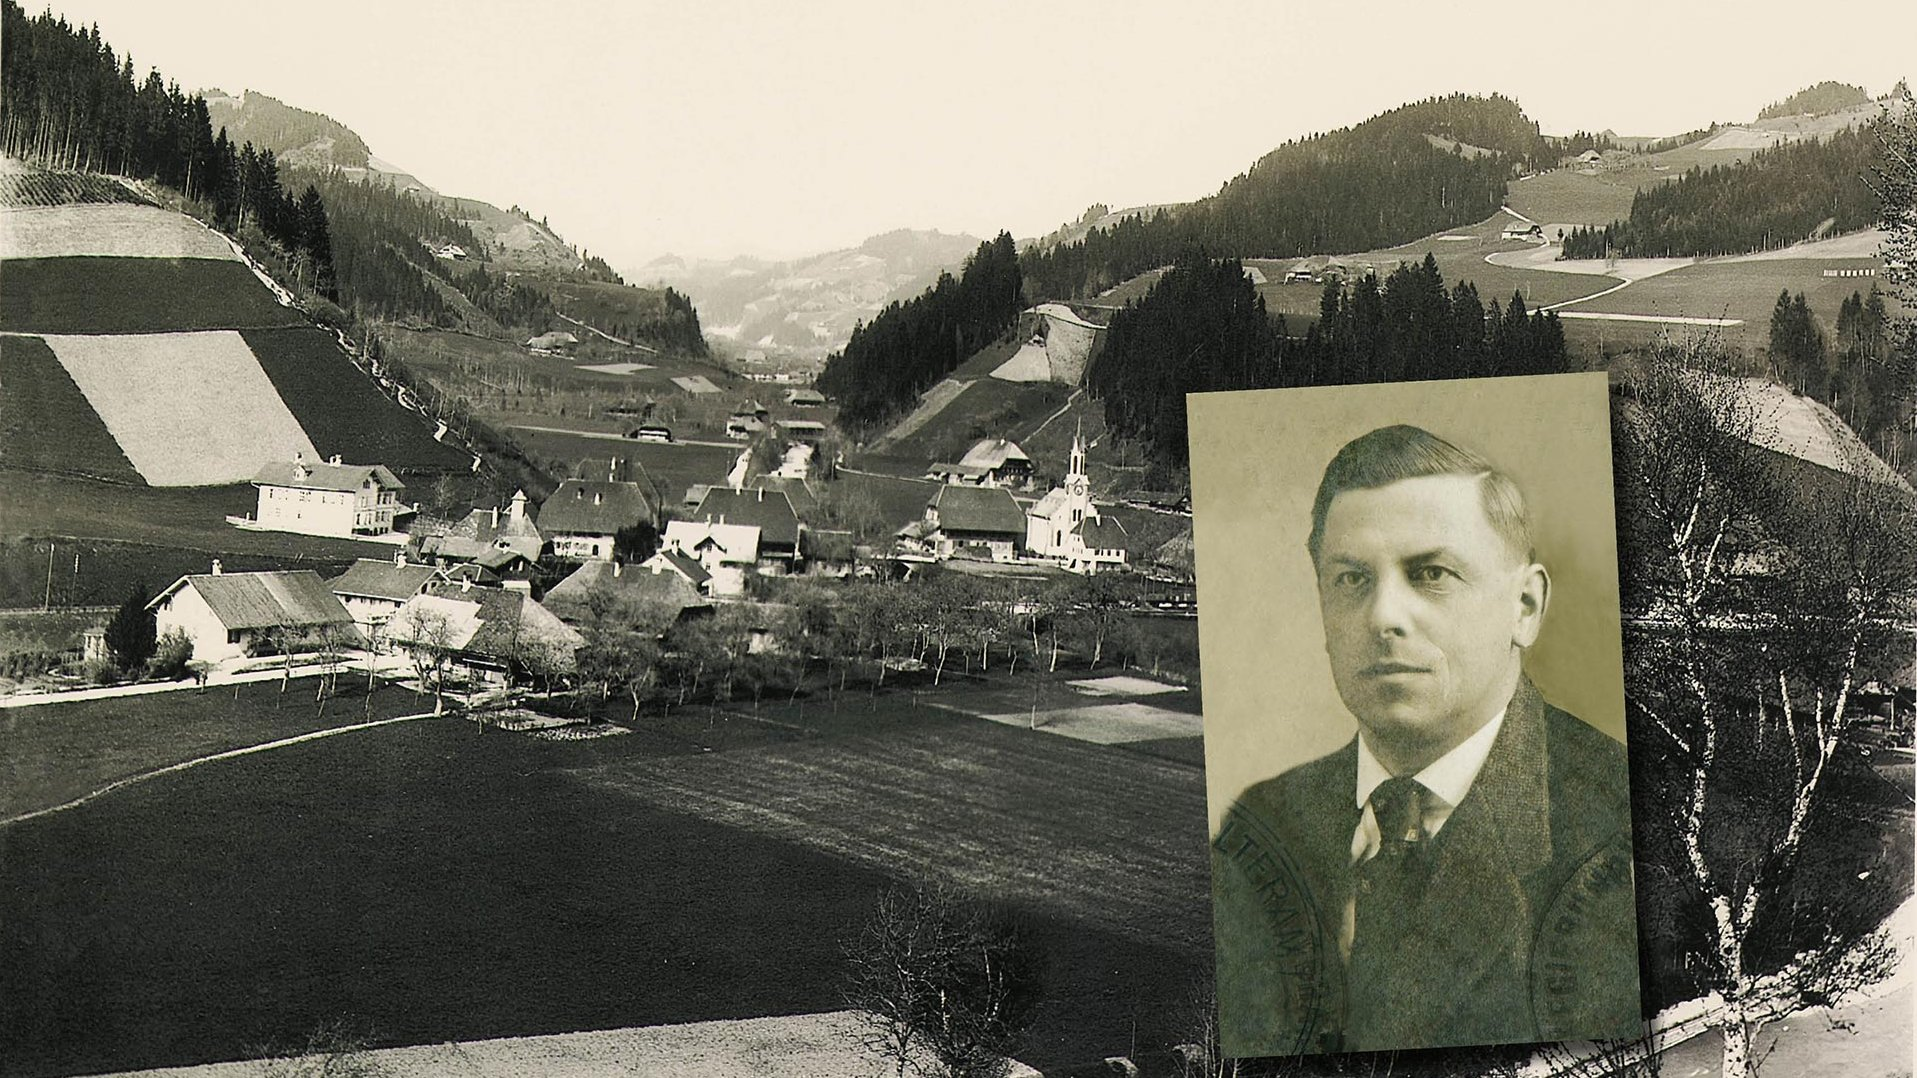 Image collage with foto of Trubschachen 1904 and a portrait of Hans Jakob